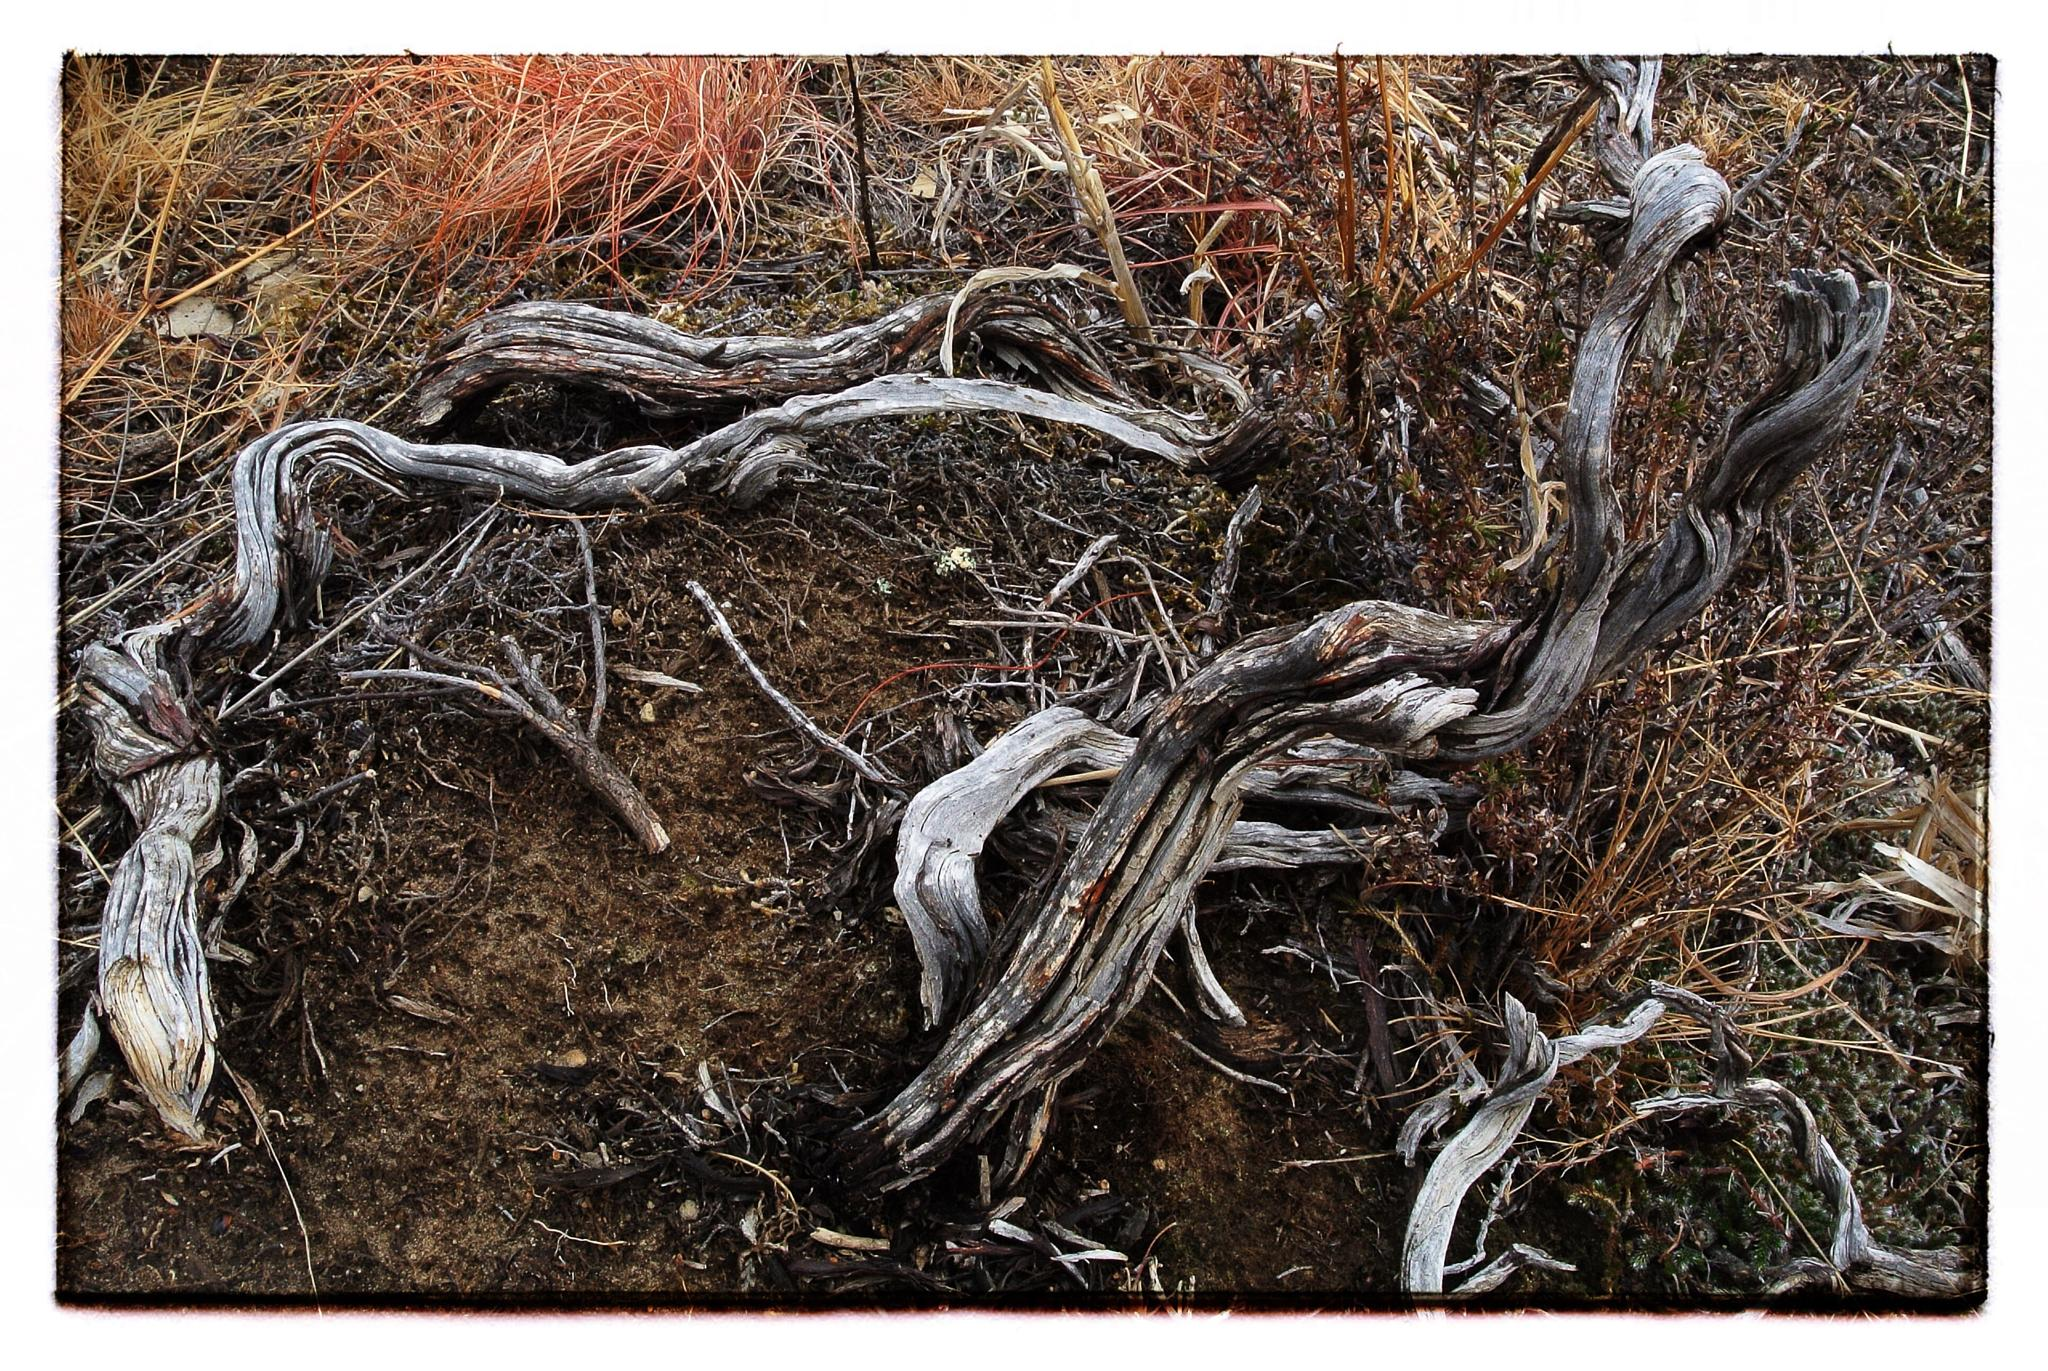 Decayed branches by GordonR